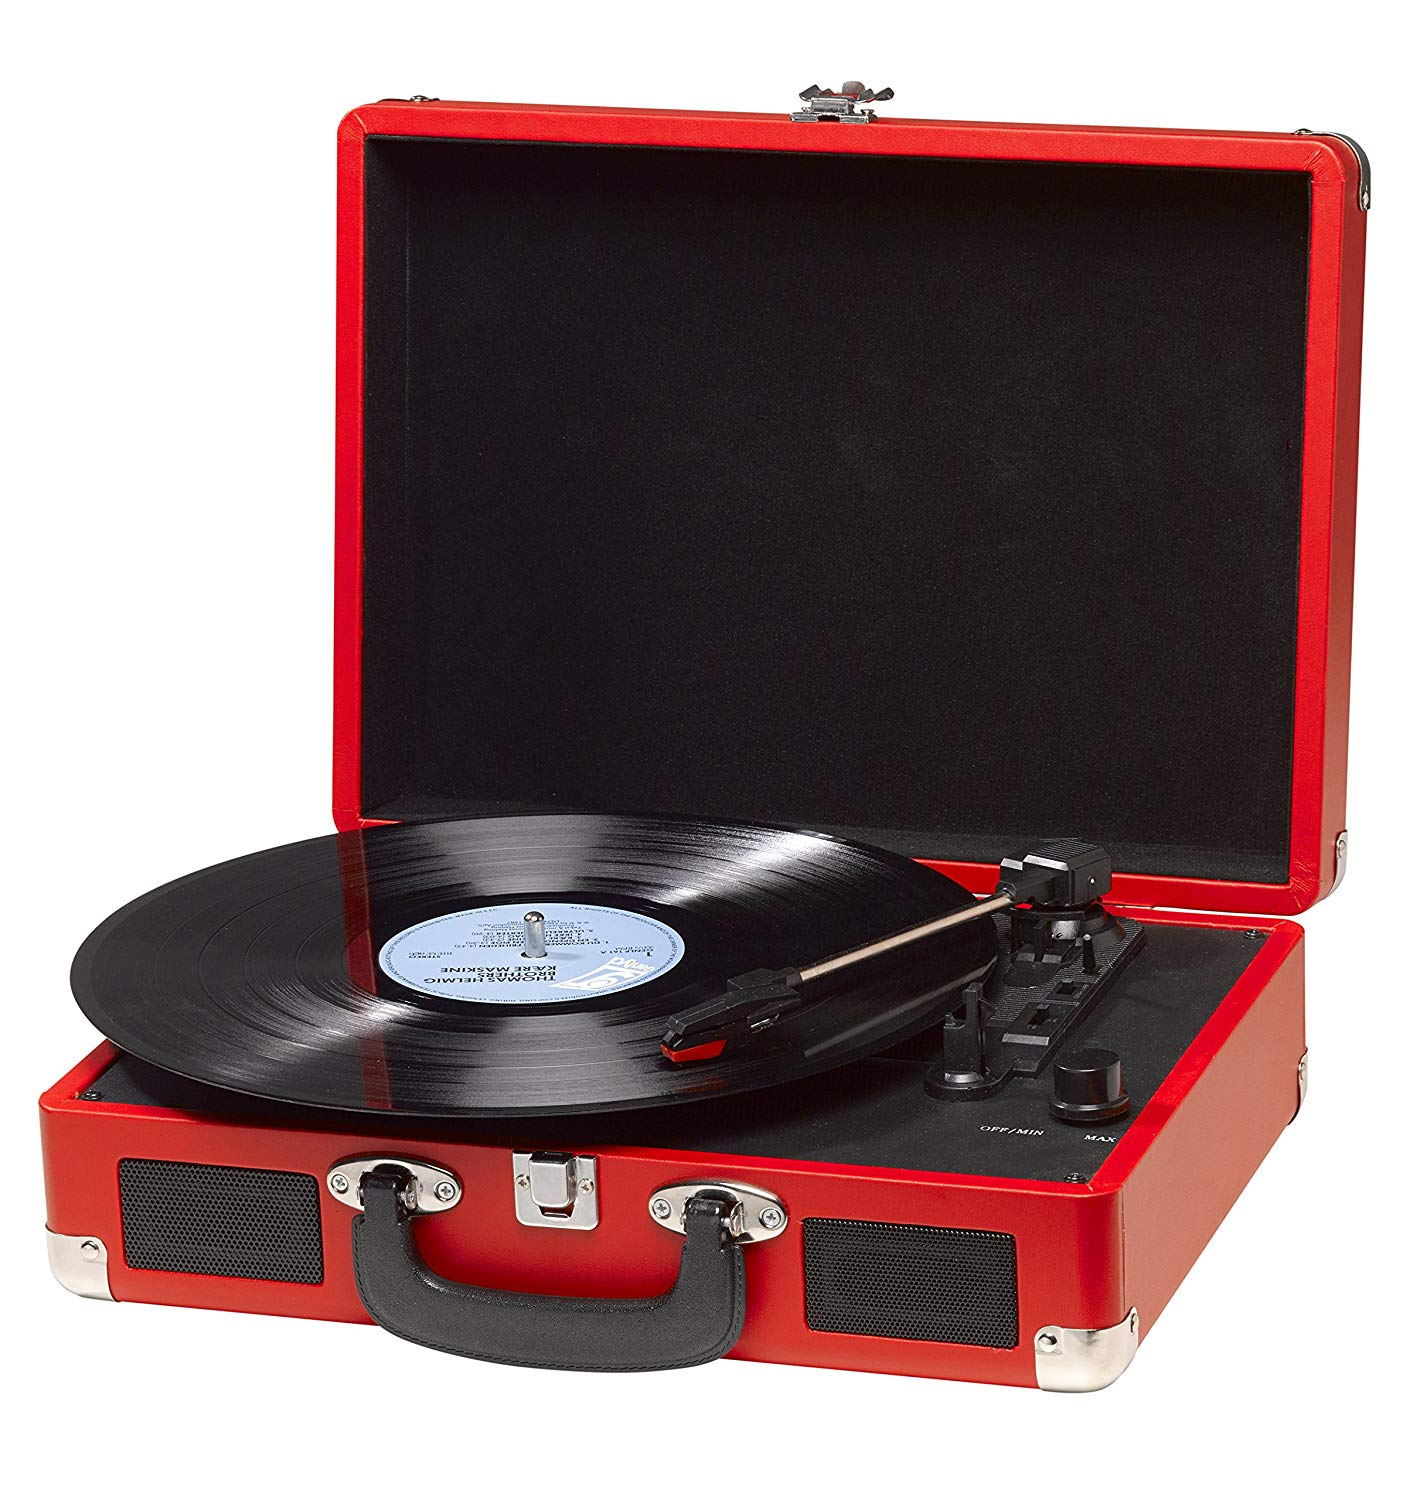 DENVER VPL-120 Turntable With Speakers (2x1W) Record Player Retro Design PC Recording Mode USB Cable Red Color 3 Speeds